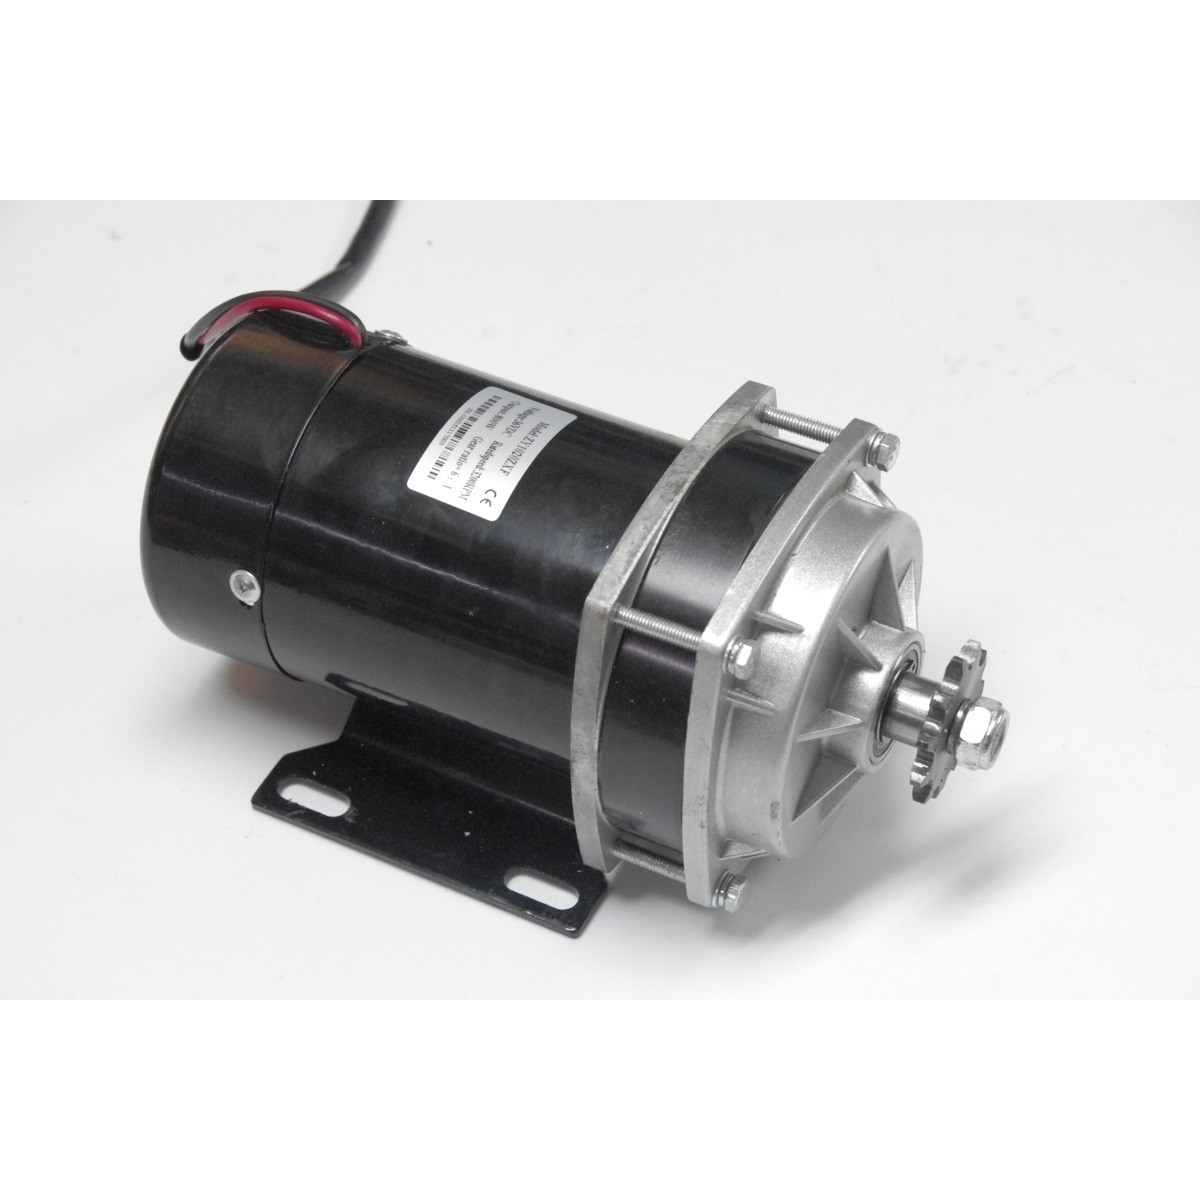 My1020zx 800w 36v dc gear motor 500 rpm 1 1 hp for What is dc motor